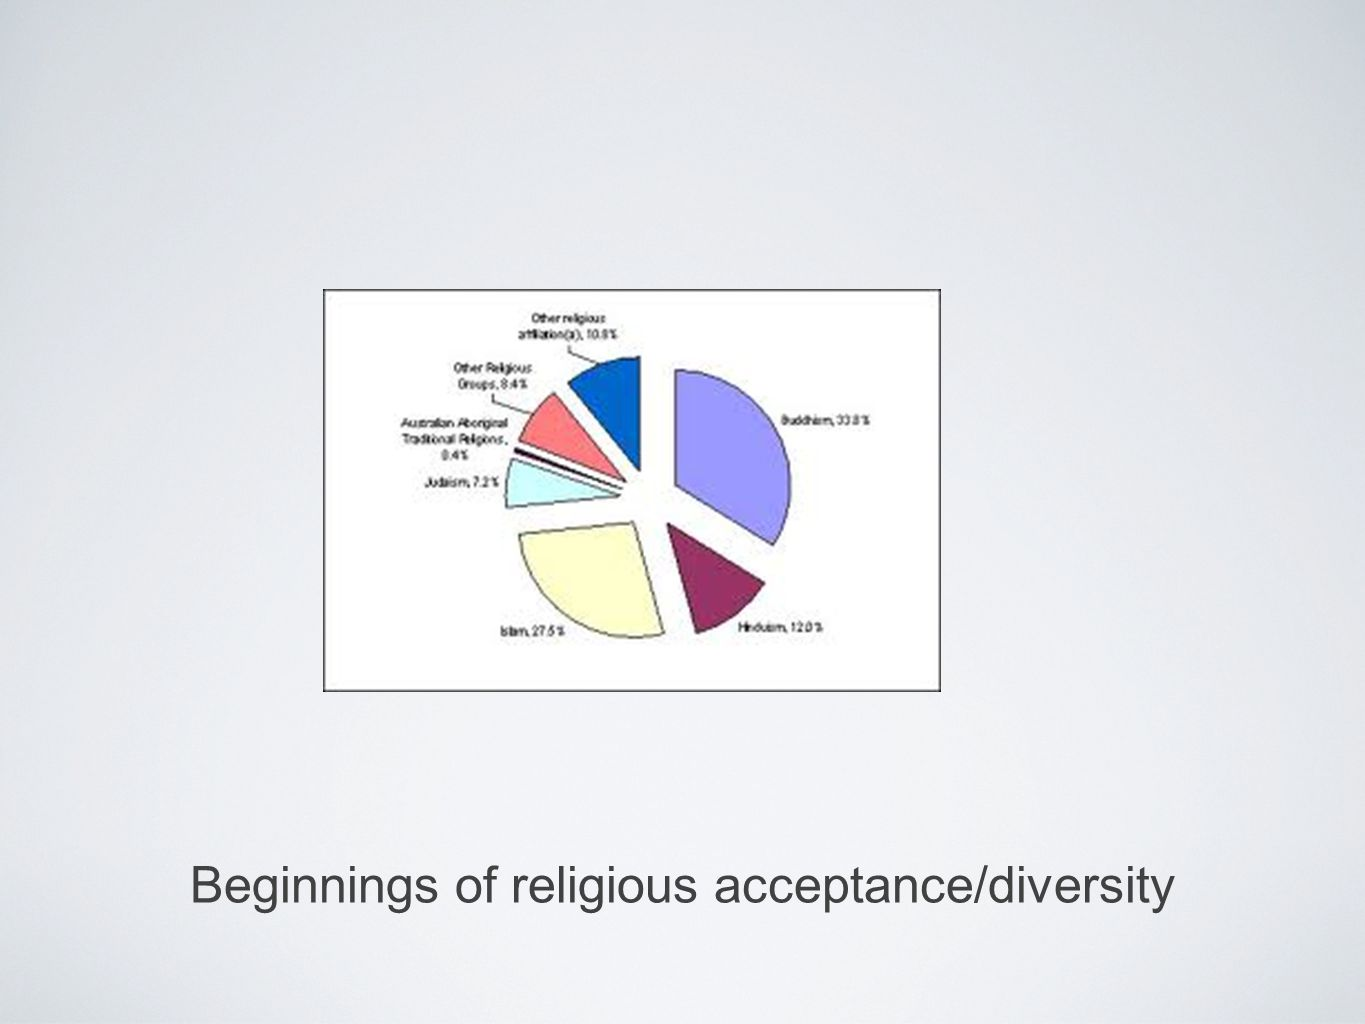 Beginnings of religious acceptance/diversity